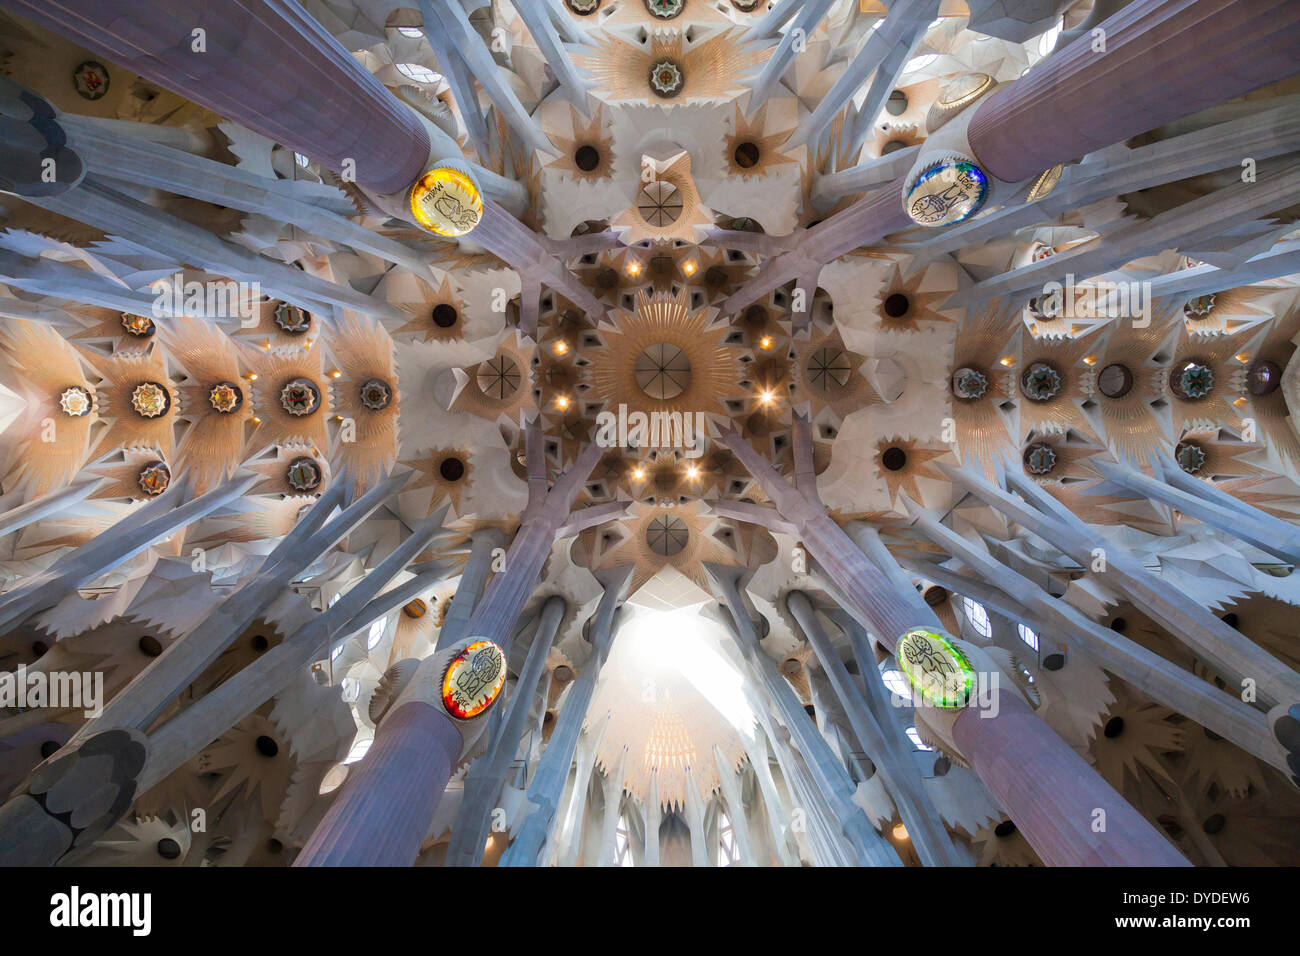 Looking up into the vaulted decorative transept ceiling of La Sagrada Familia Cathedral. Stock Photo